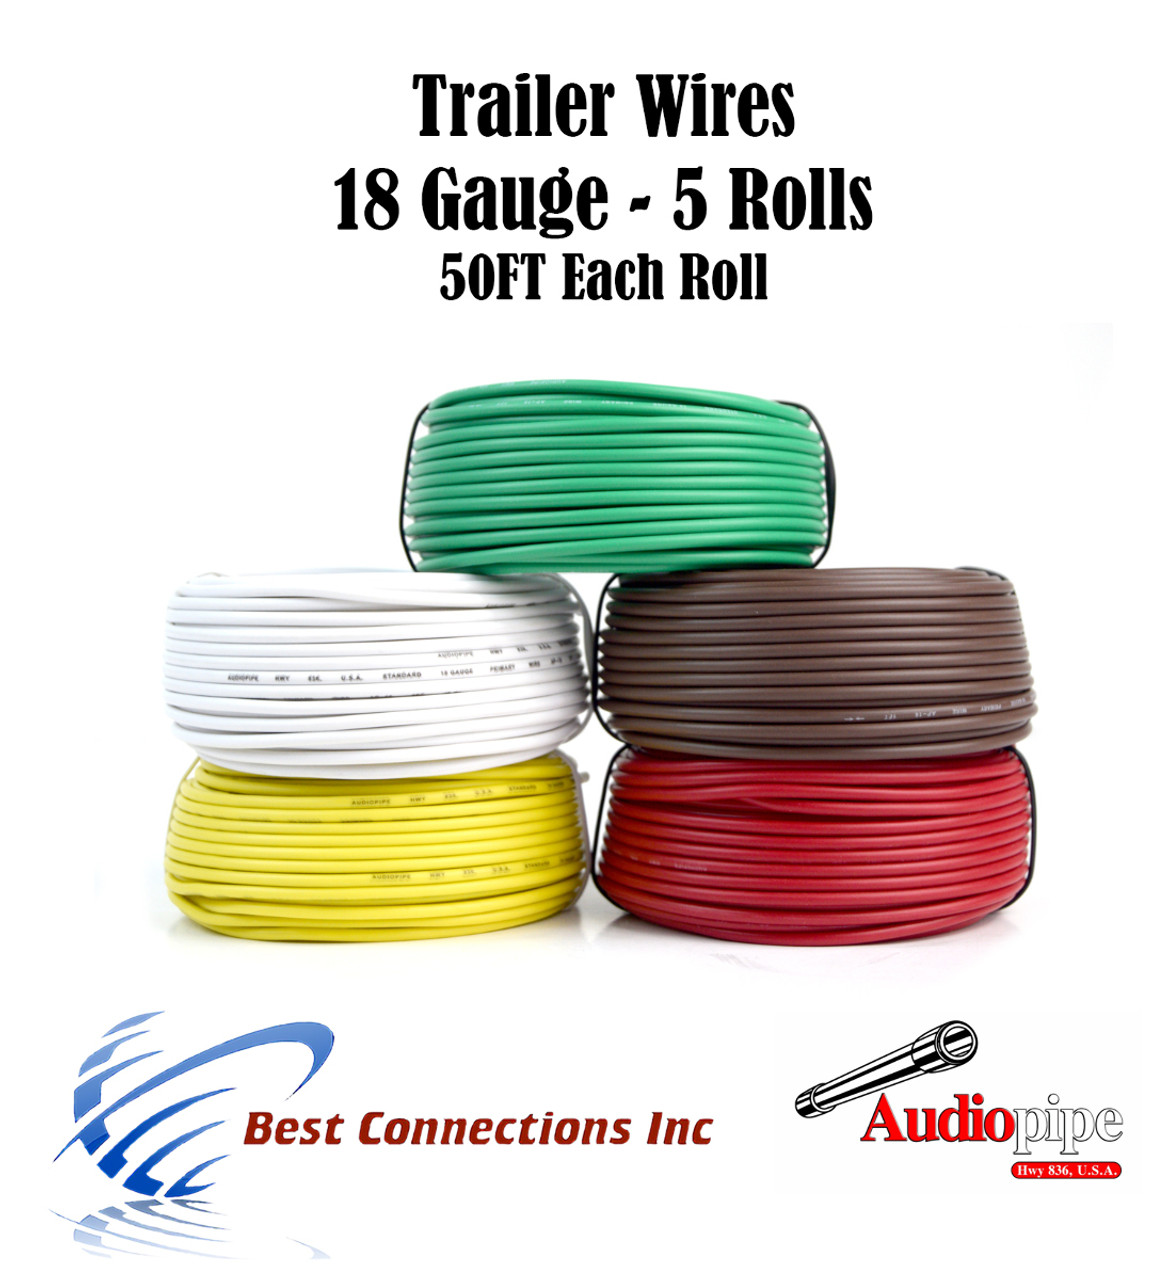 5 way trailer wire light cable for harness led 50ft each roll 18 rh ocalapowersports com trailer wiring cable 6 strand trailer cable wiring diagram